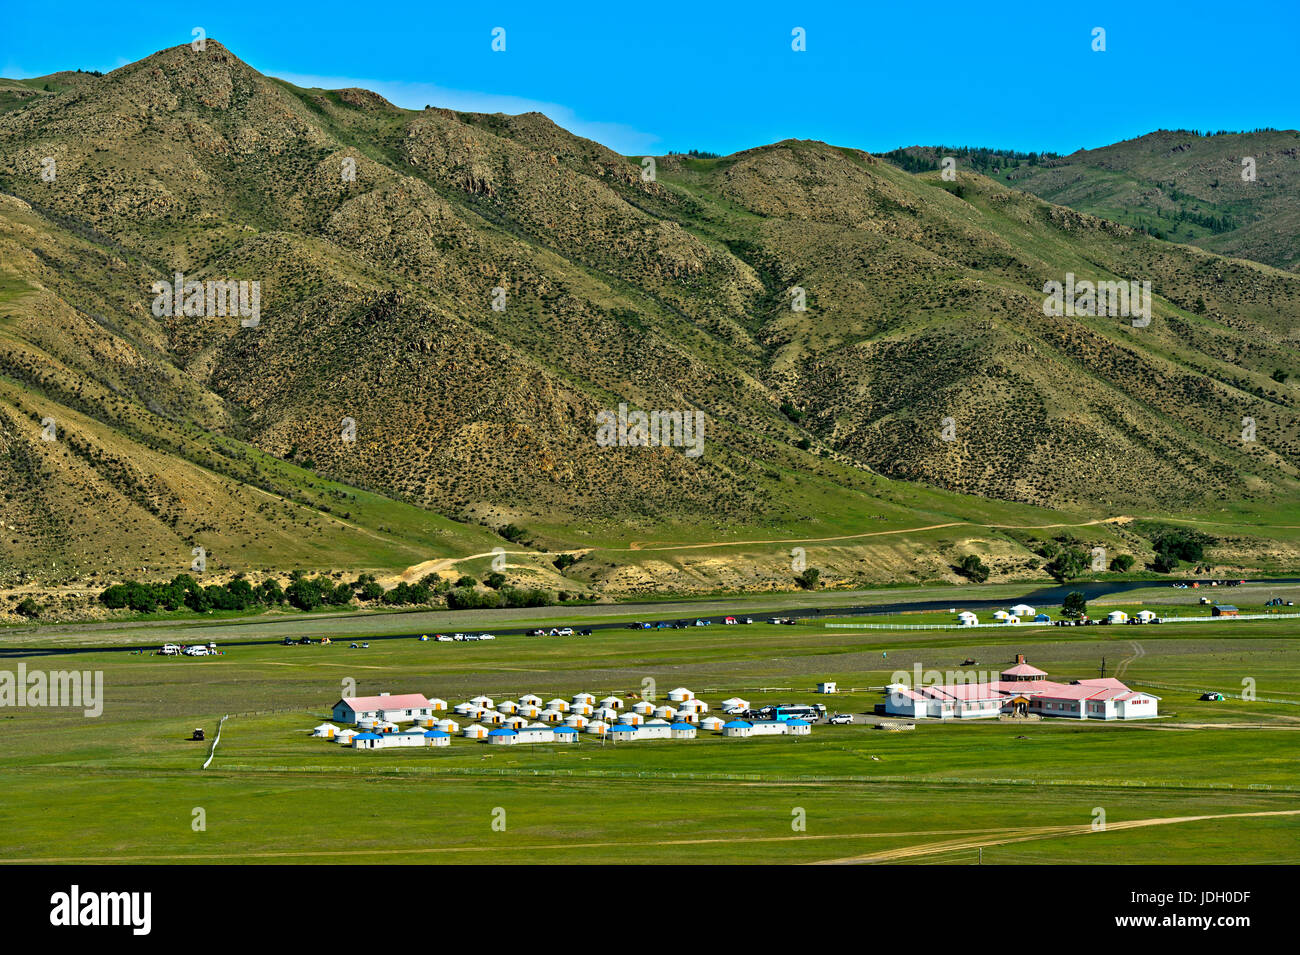 Ger camp for tourists in the Orkhon Valley near Kharkhorin, Mongolia - Stock Image